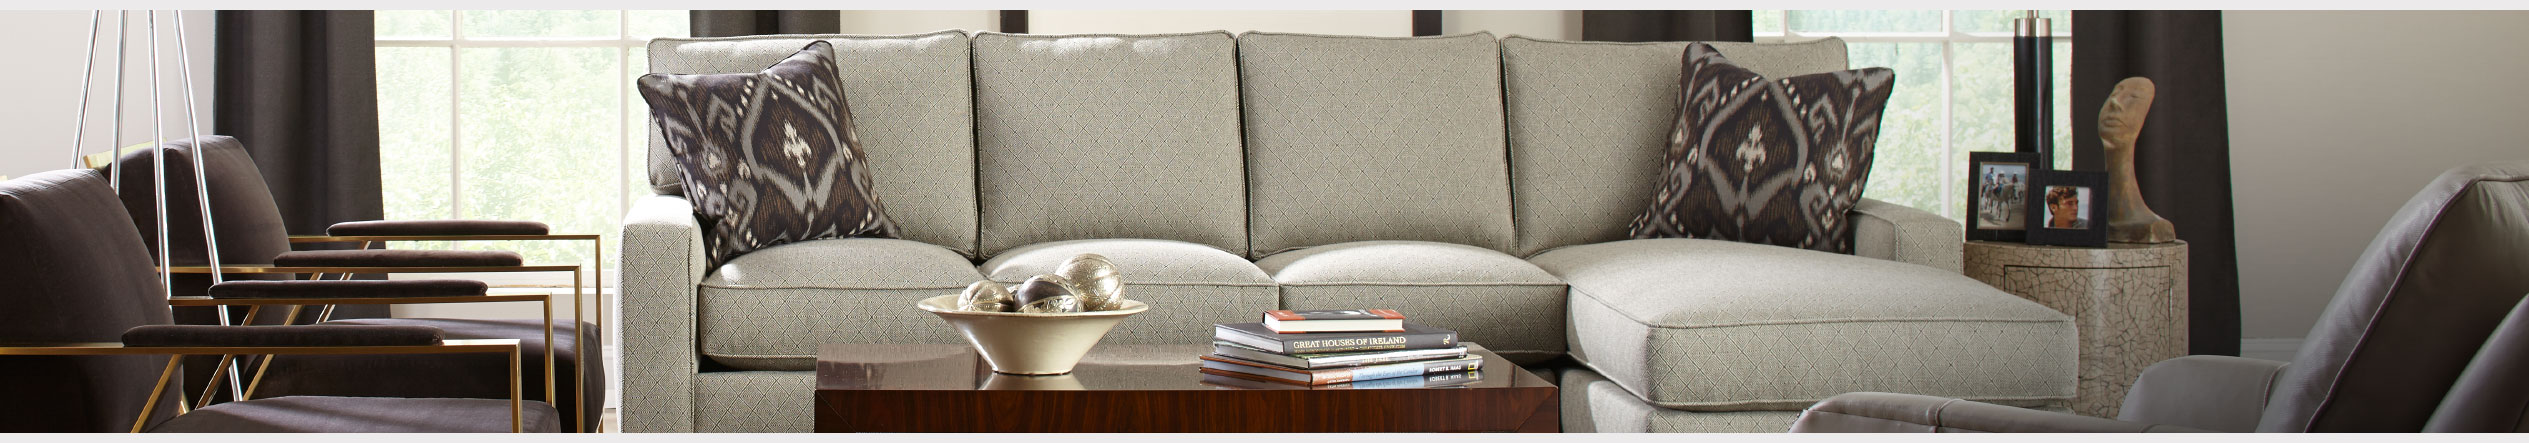 Sofa Service Pickup And Delivery Policies At Jordan S Furniture